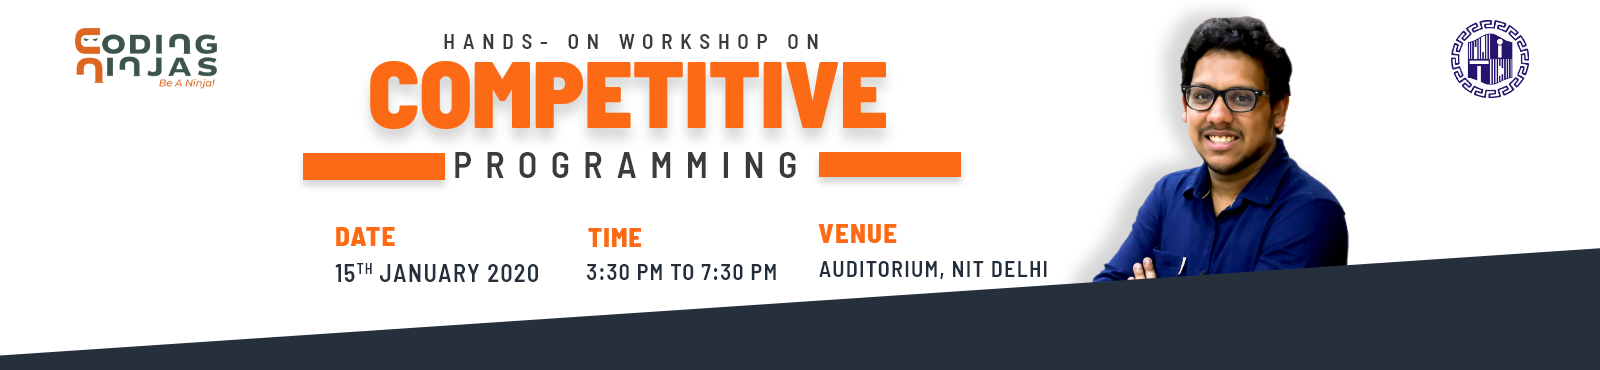 Workshop on Competitive Programming at NIT Delhi on 15th January'20